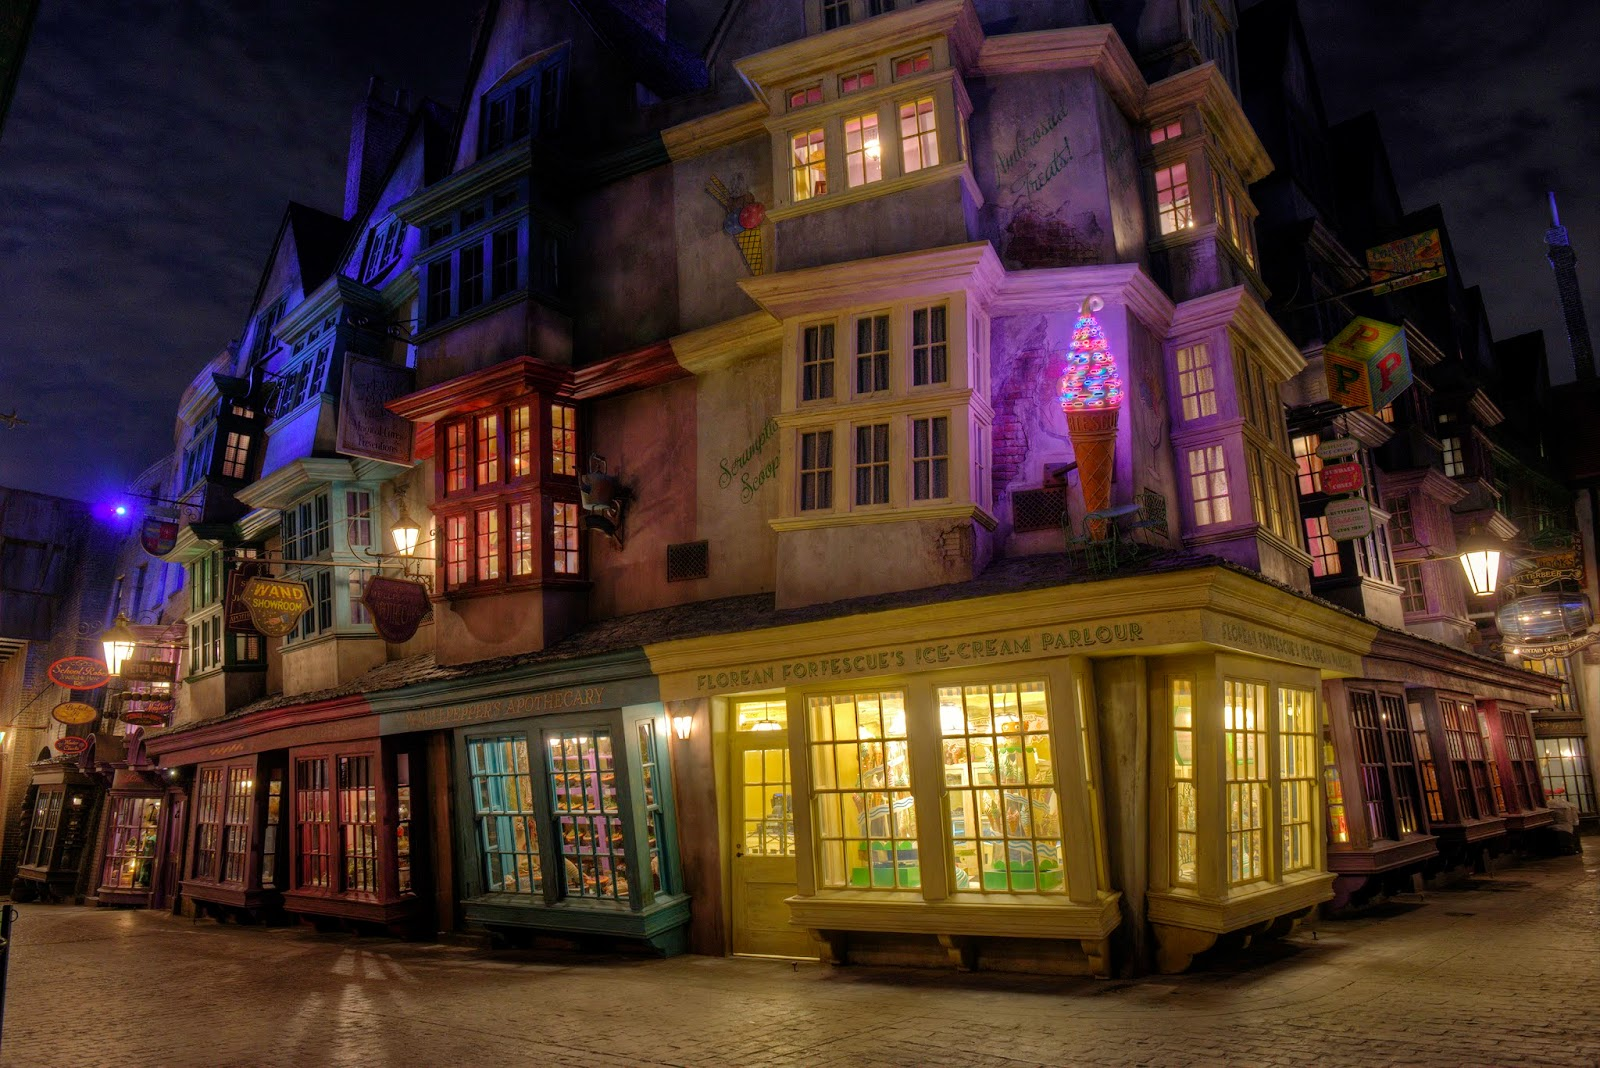 Florean Fortescue's Ice Cream Parlor Diagon Alley